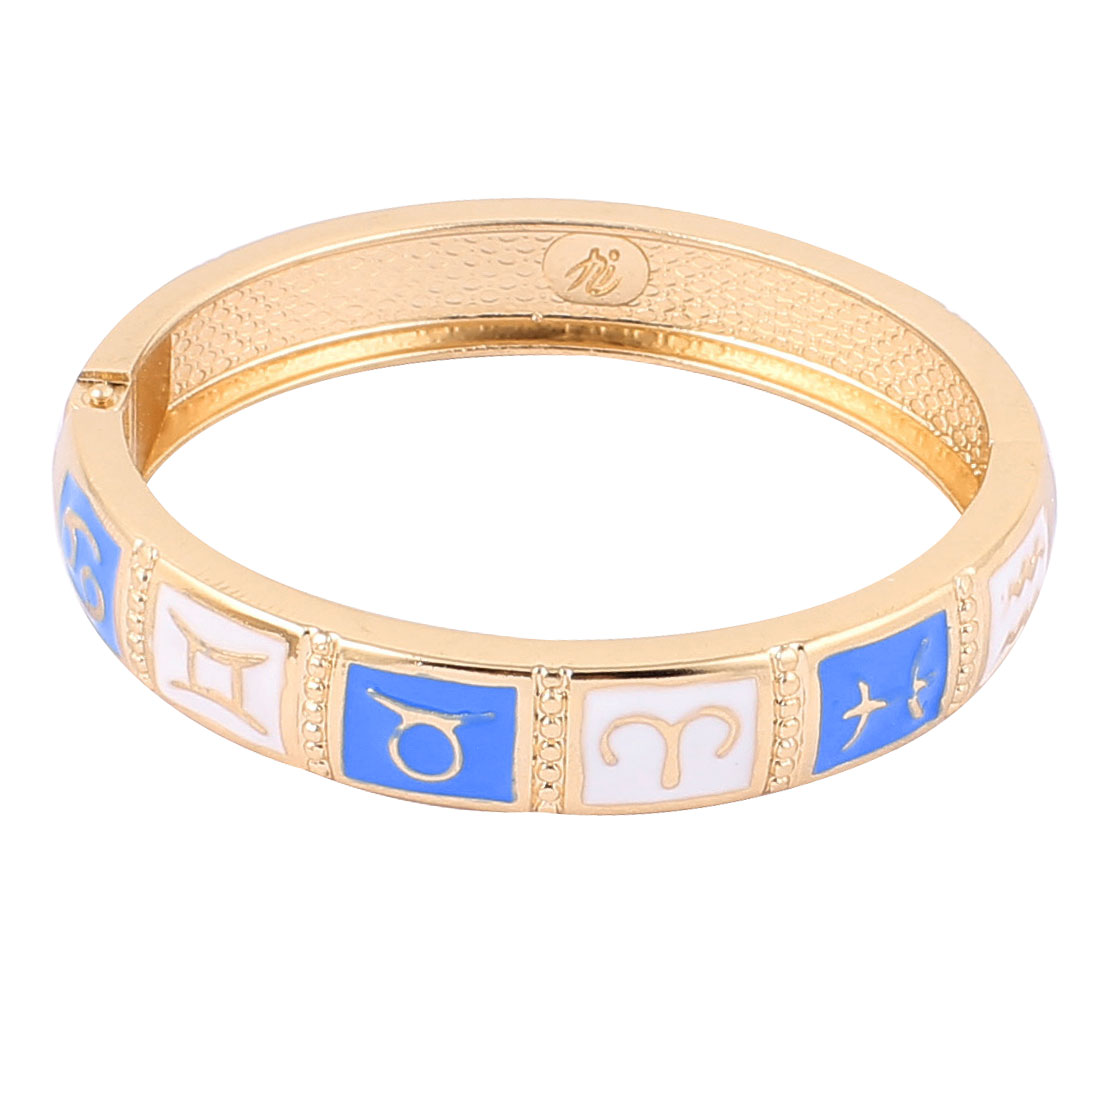 "Wrist Gold Tone Metal 12 Constellations Pattern Bracelet White Enamel 0.4"" Width"